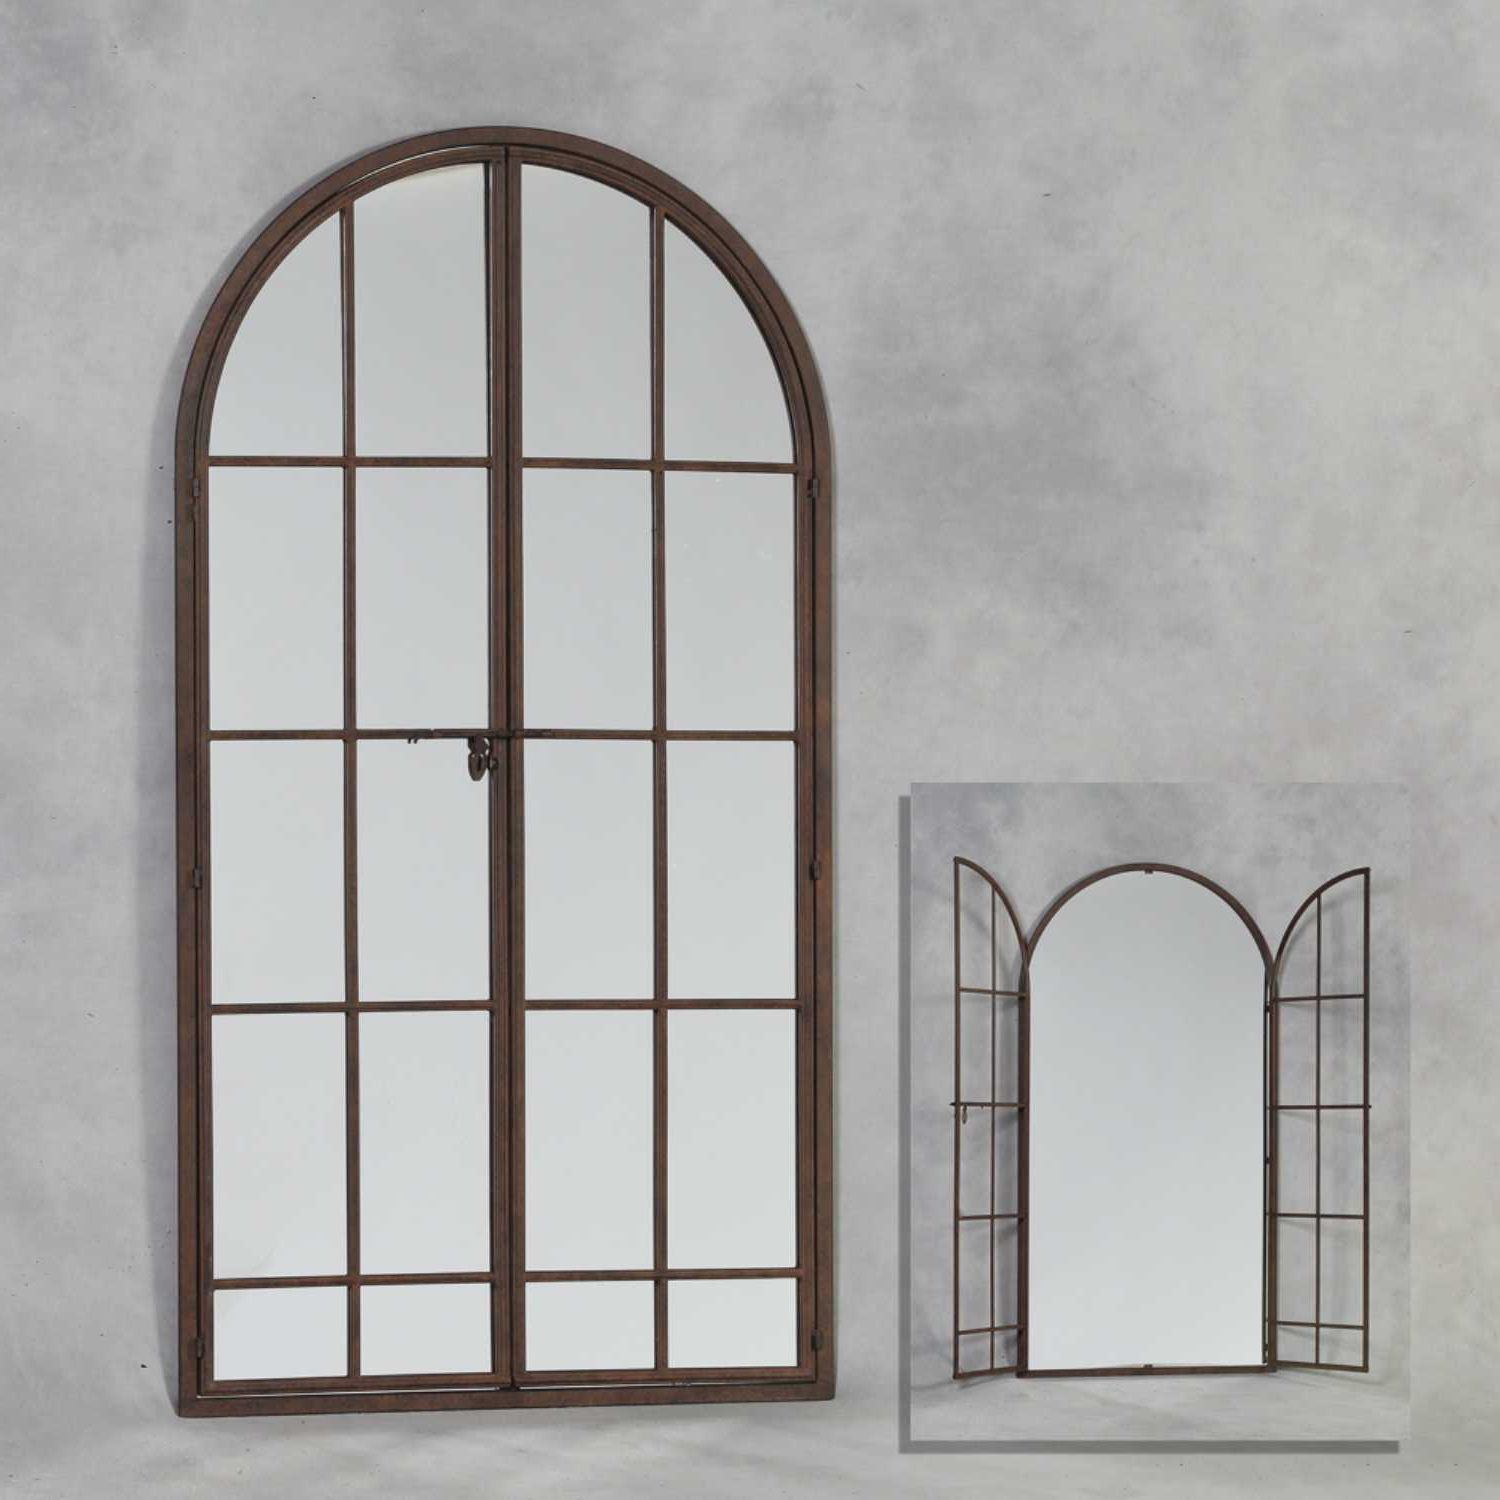 Fashionable Metal Arch Window Wall Mirrors With Regard To Large Arched Metal Opening Window Wall Mirror Antiqued Iron Frame (View 2 of 20)